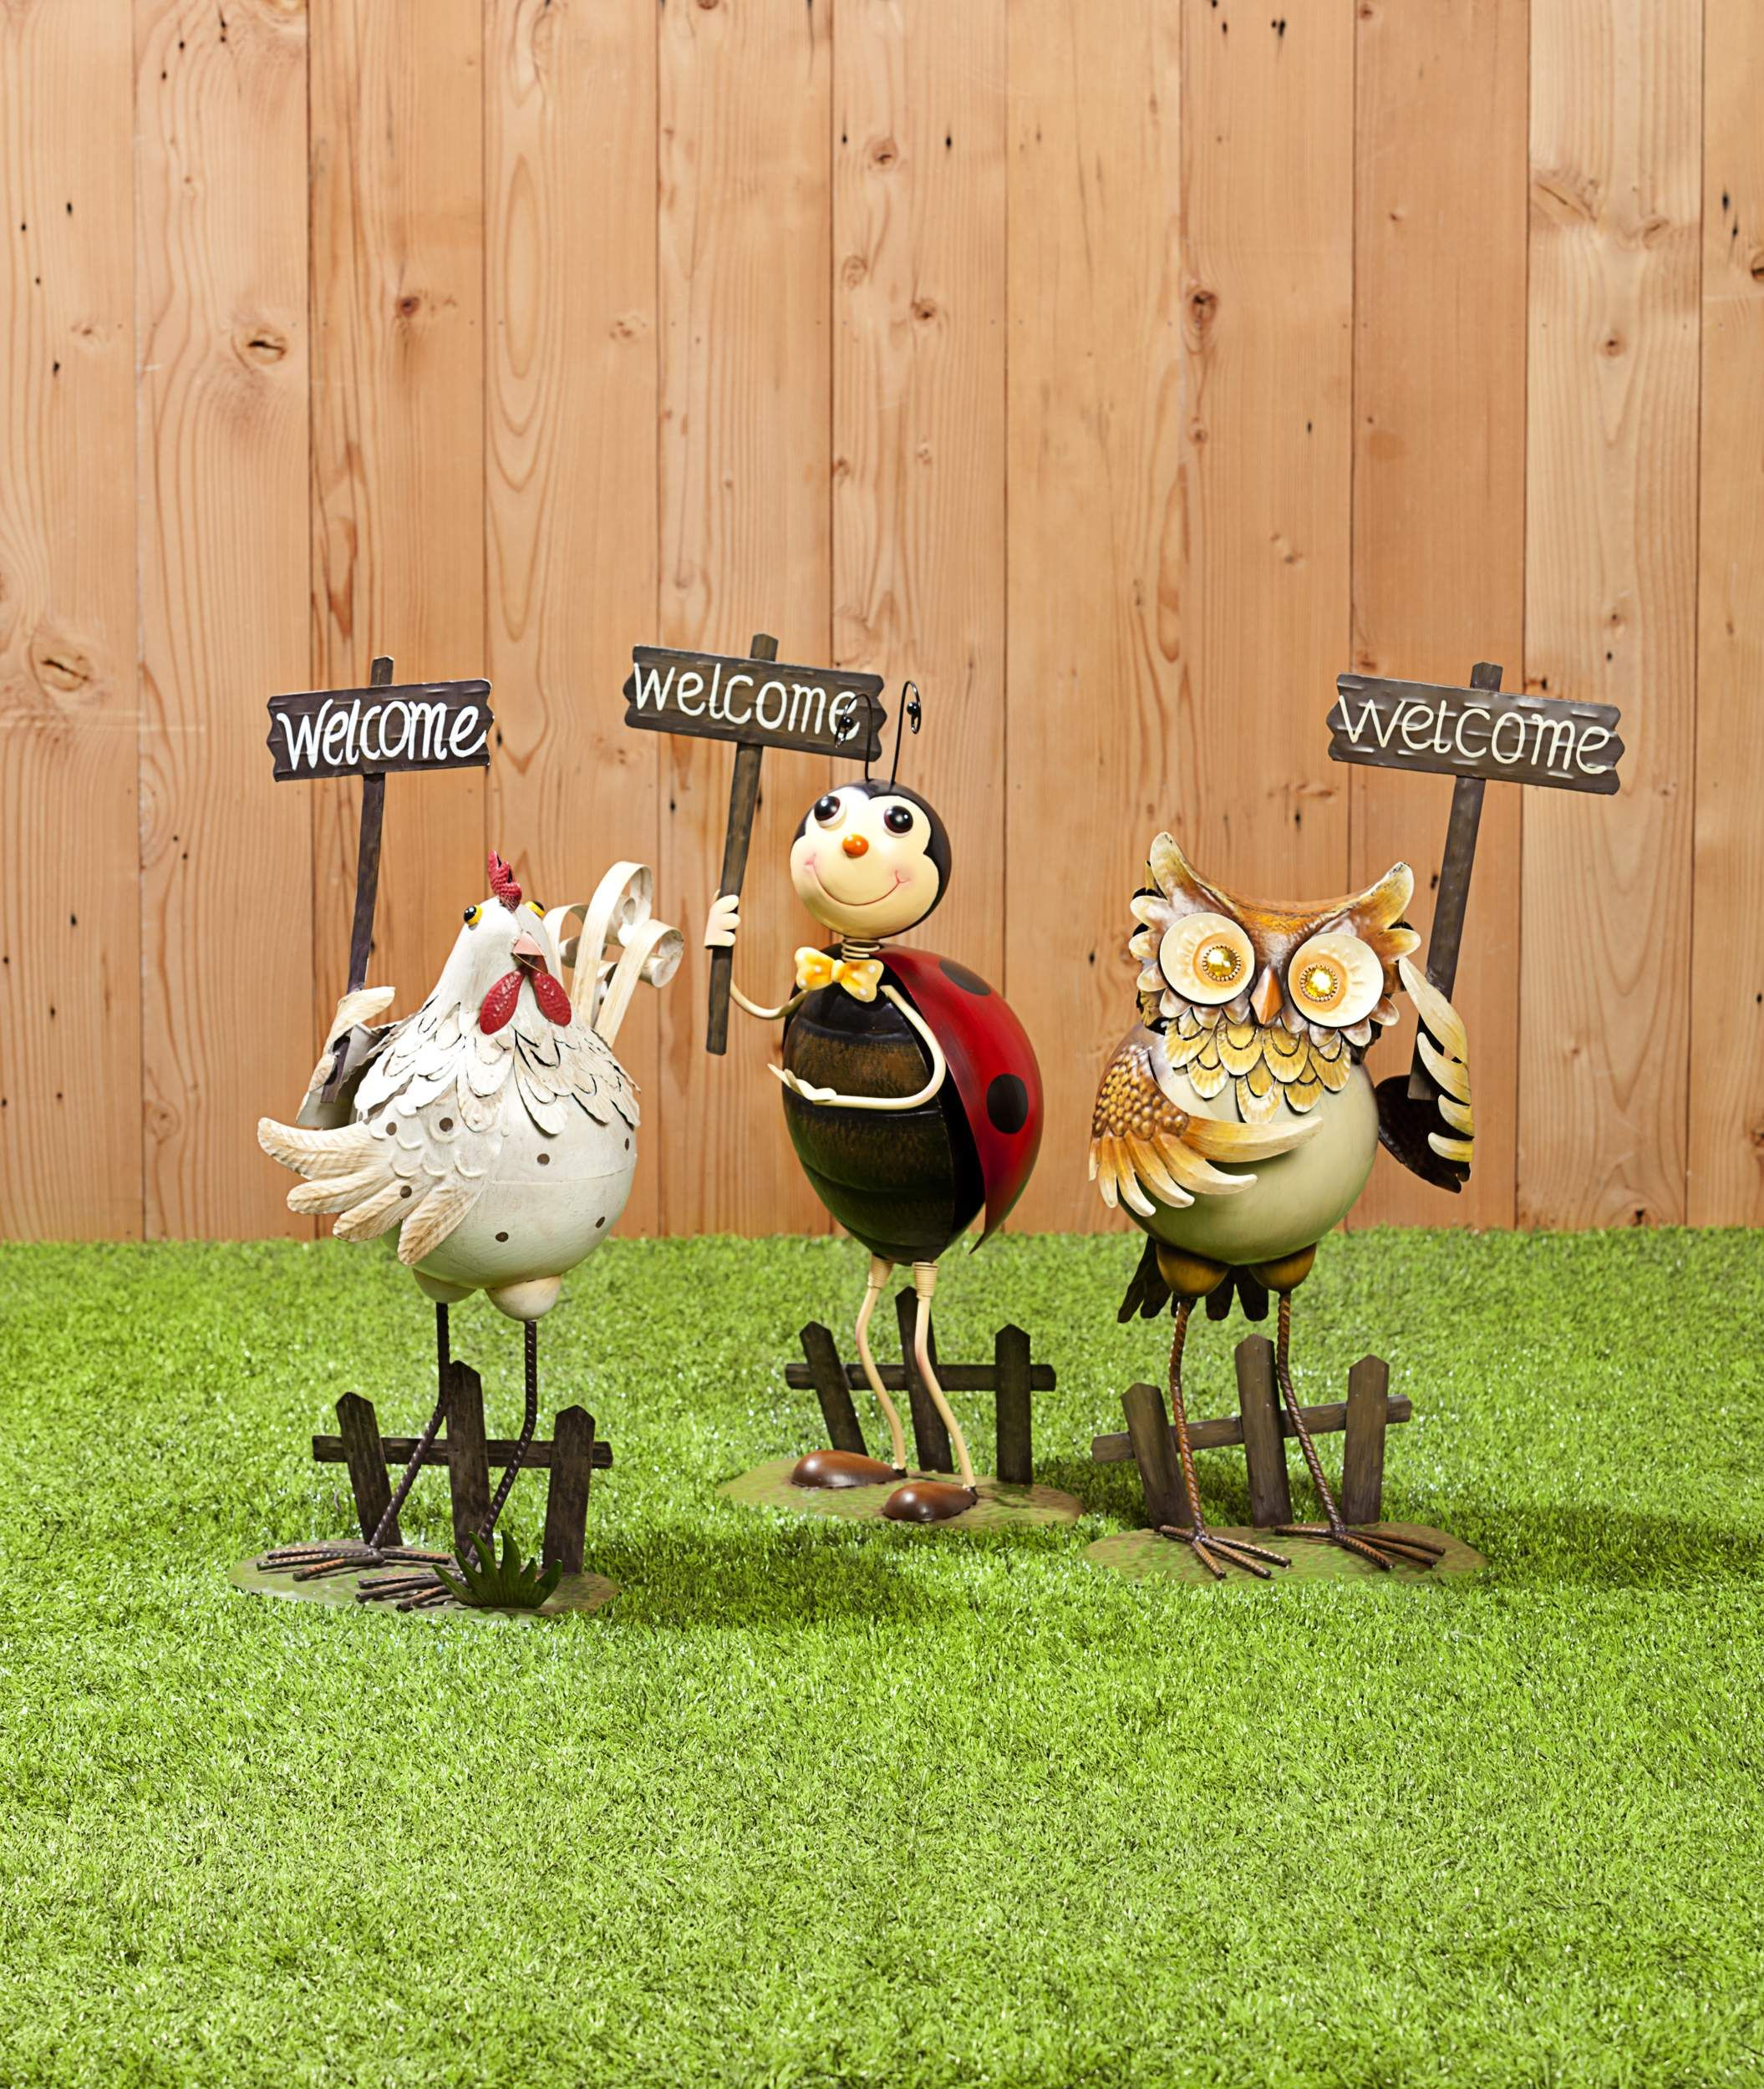 Decorative Metal Garden Figures Chicken, Ladybug and Owls $10 from